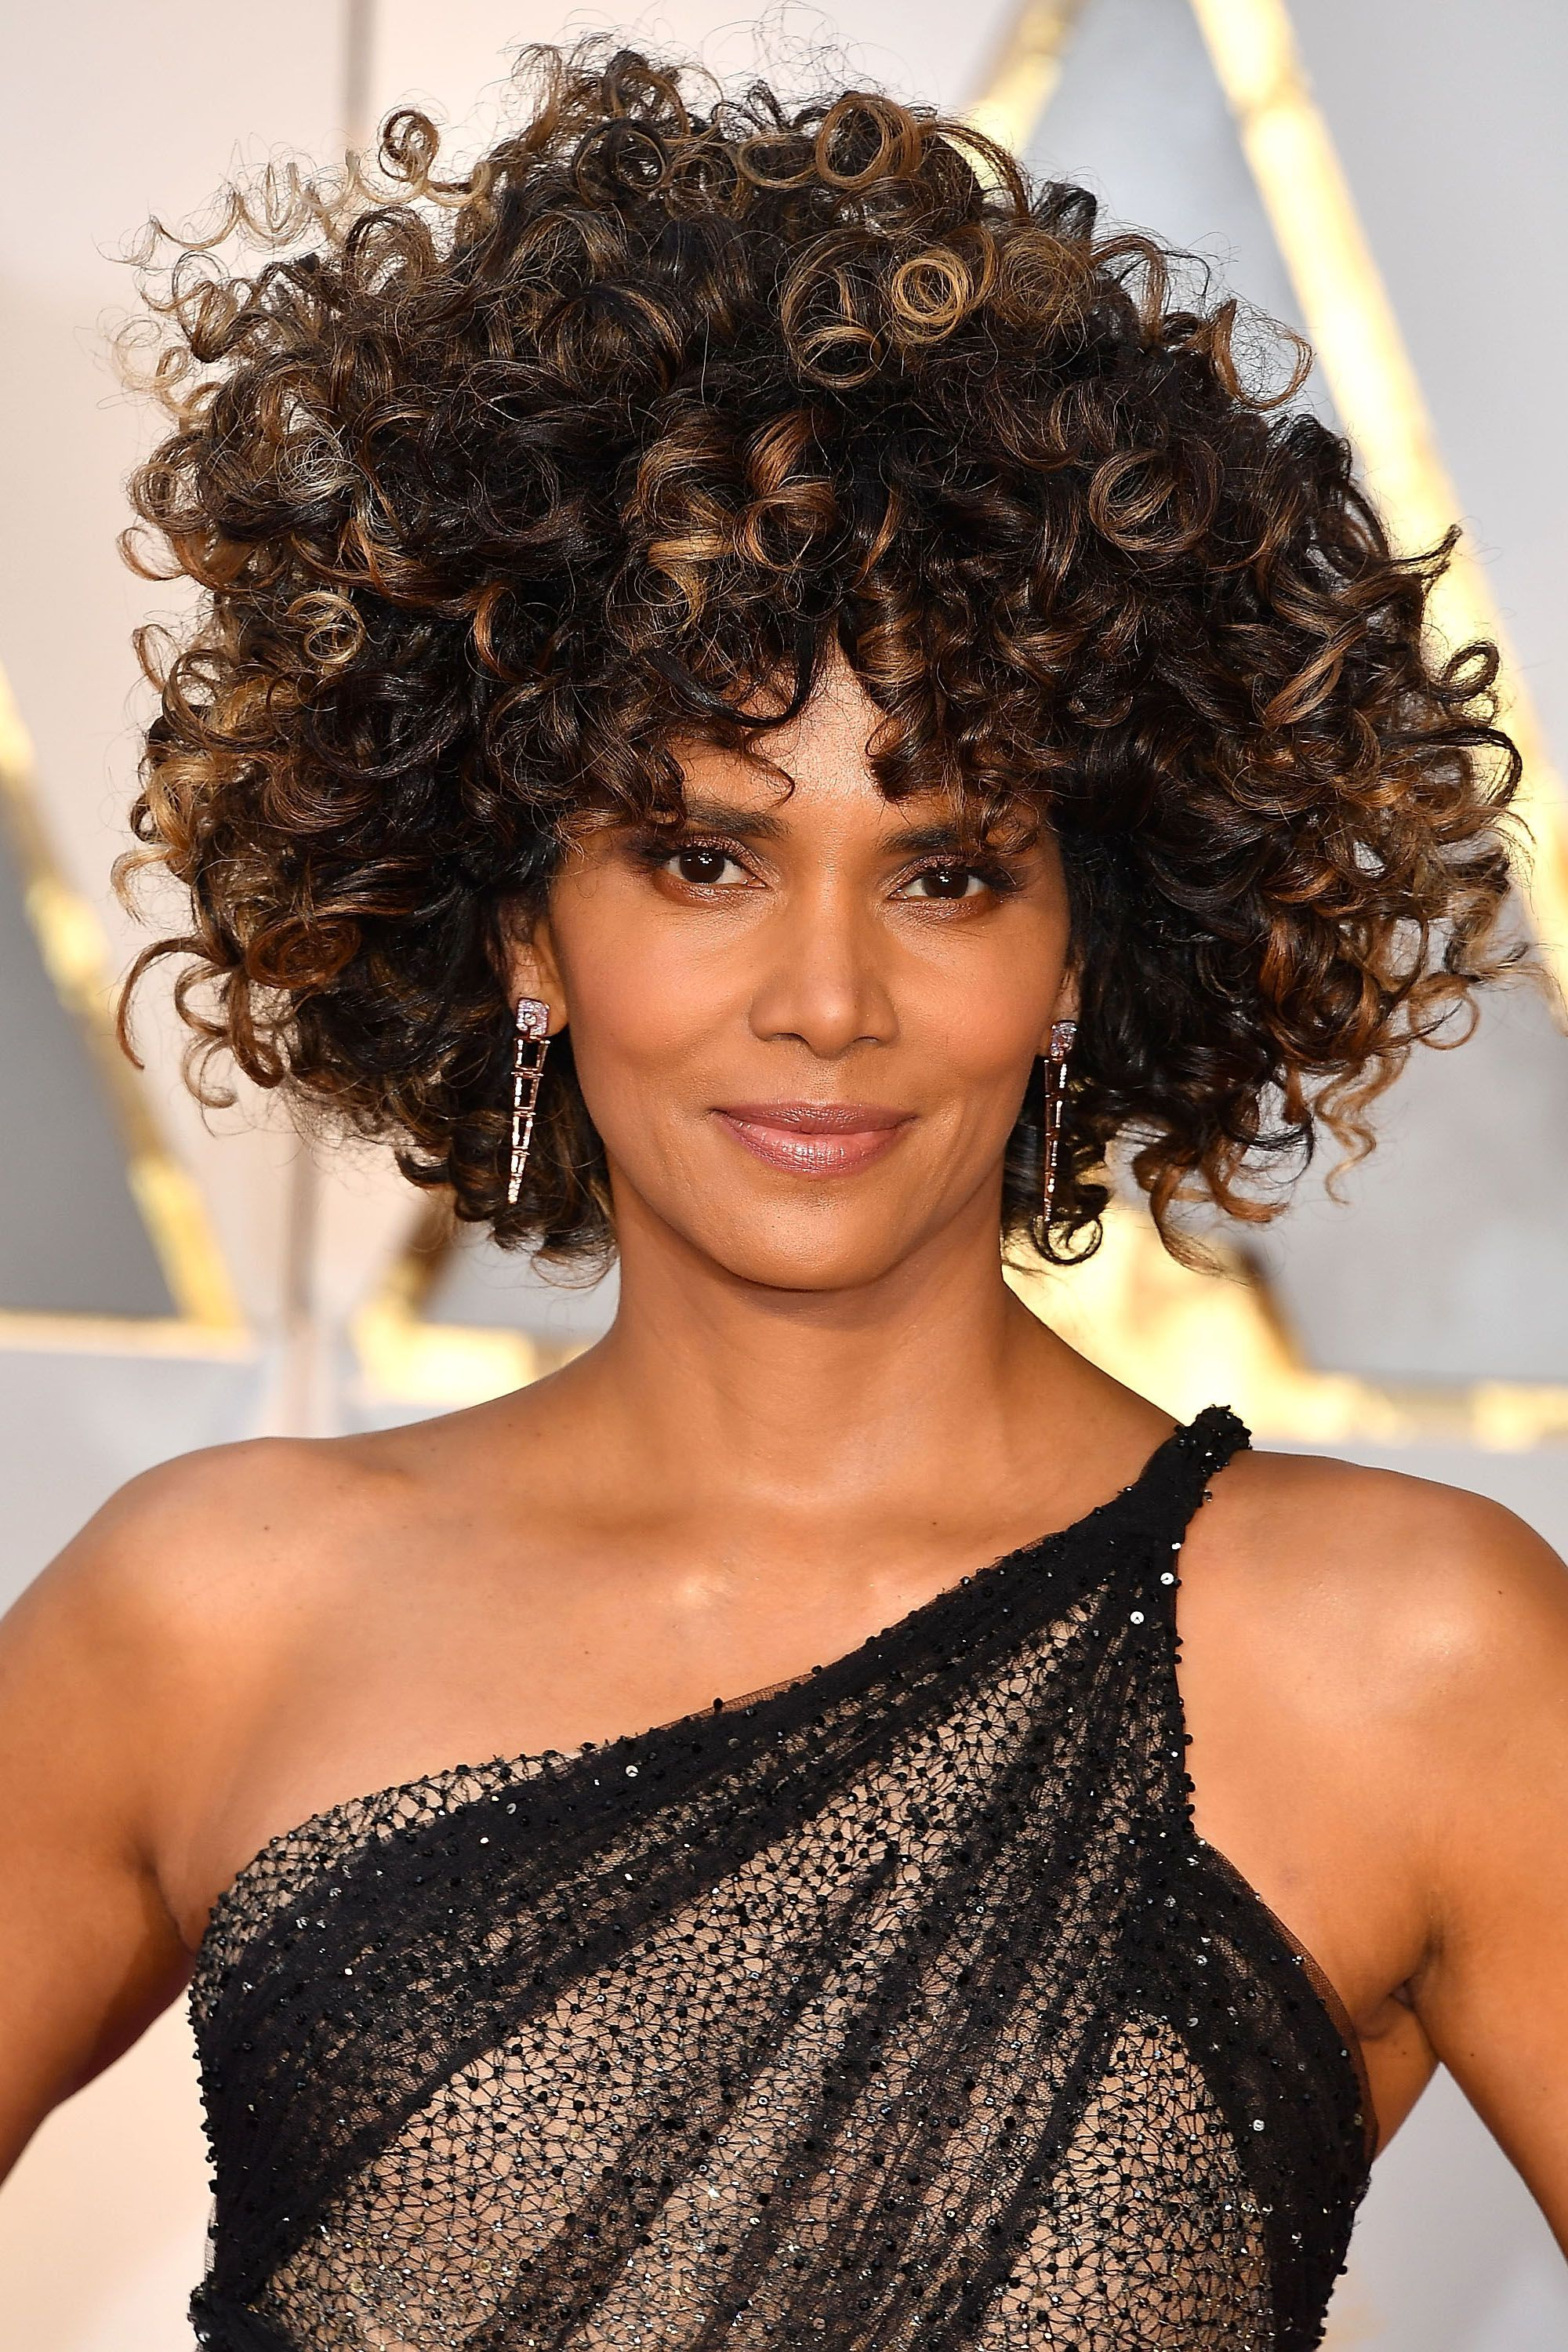 32 Curly Hairstyles And Haircuts We Love Best Hairstyle Ideas For Hair